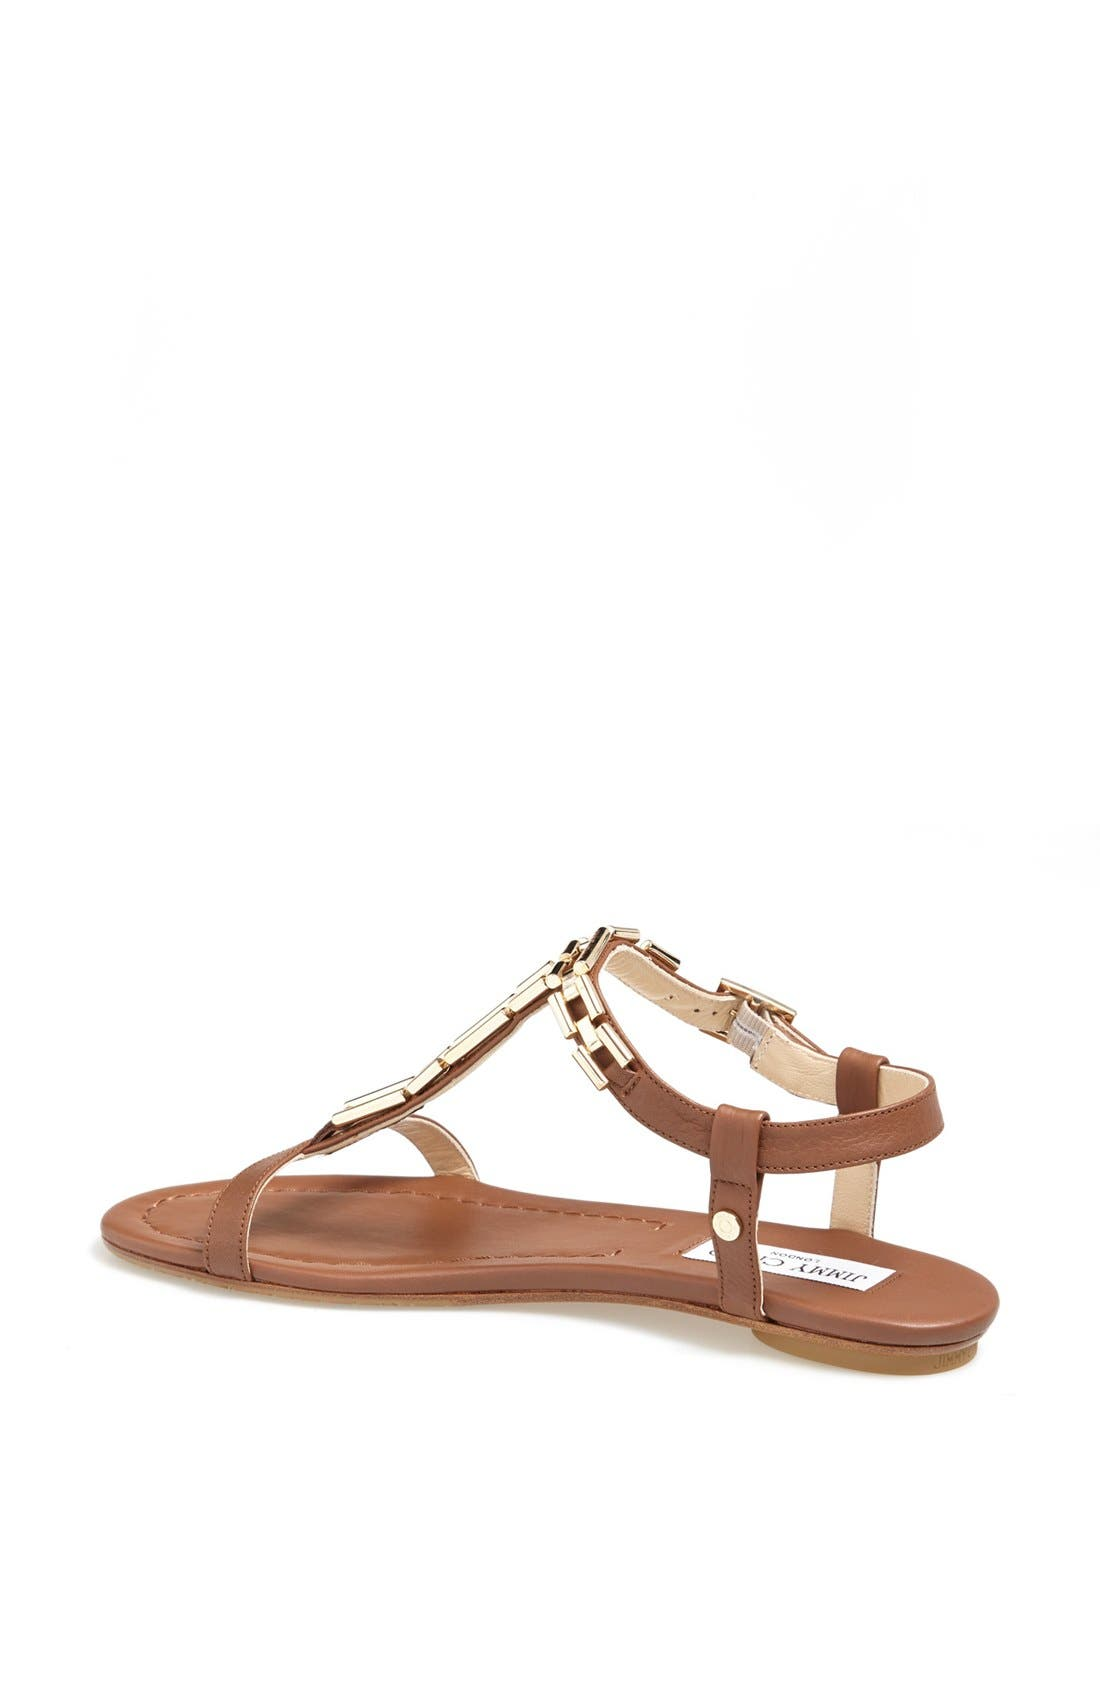 Alternate Image 2  - Jimmy Choo 'Narcissa' Chain T-Strap Sandal